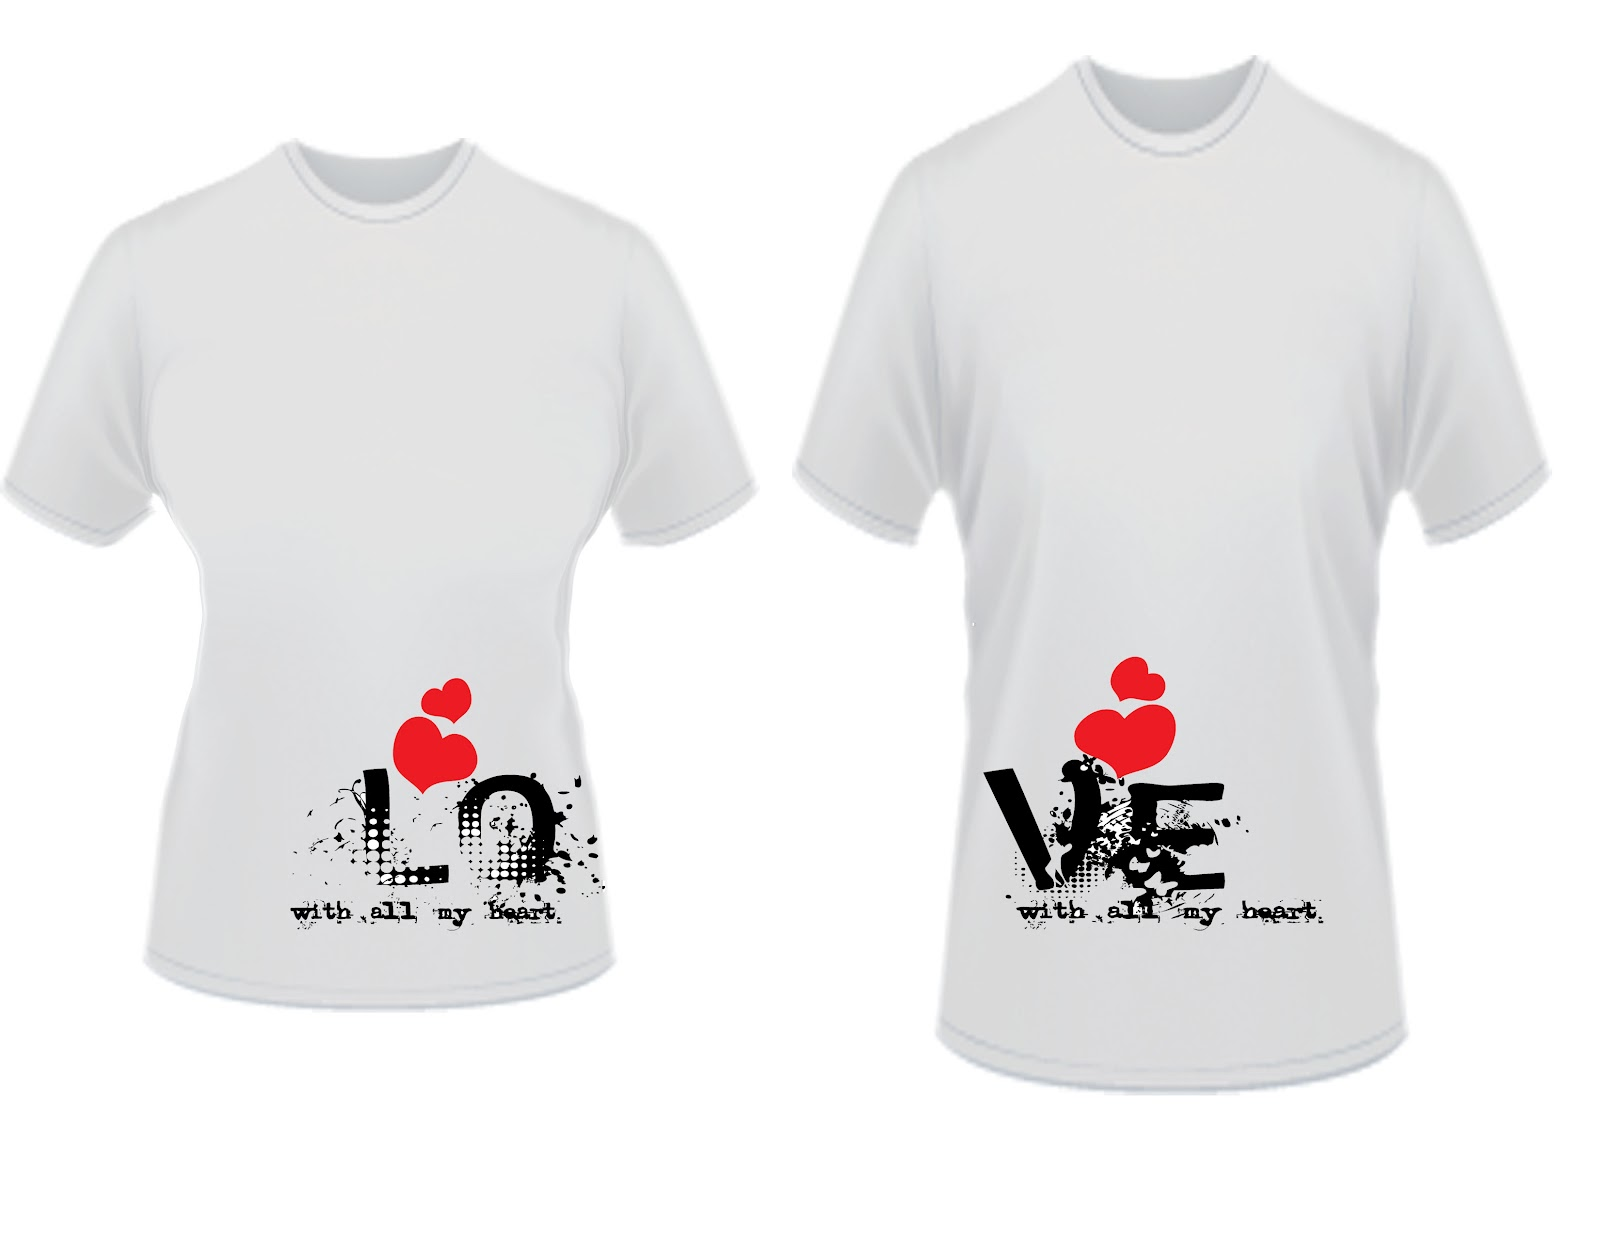 t shirt printing software